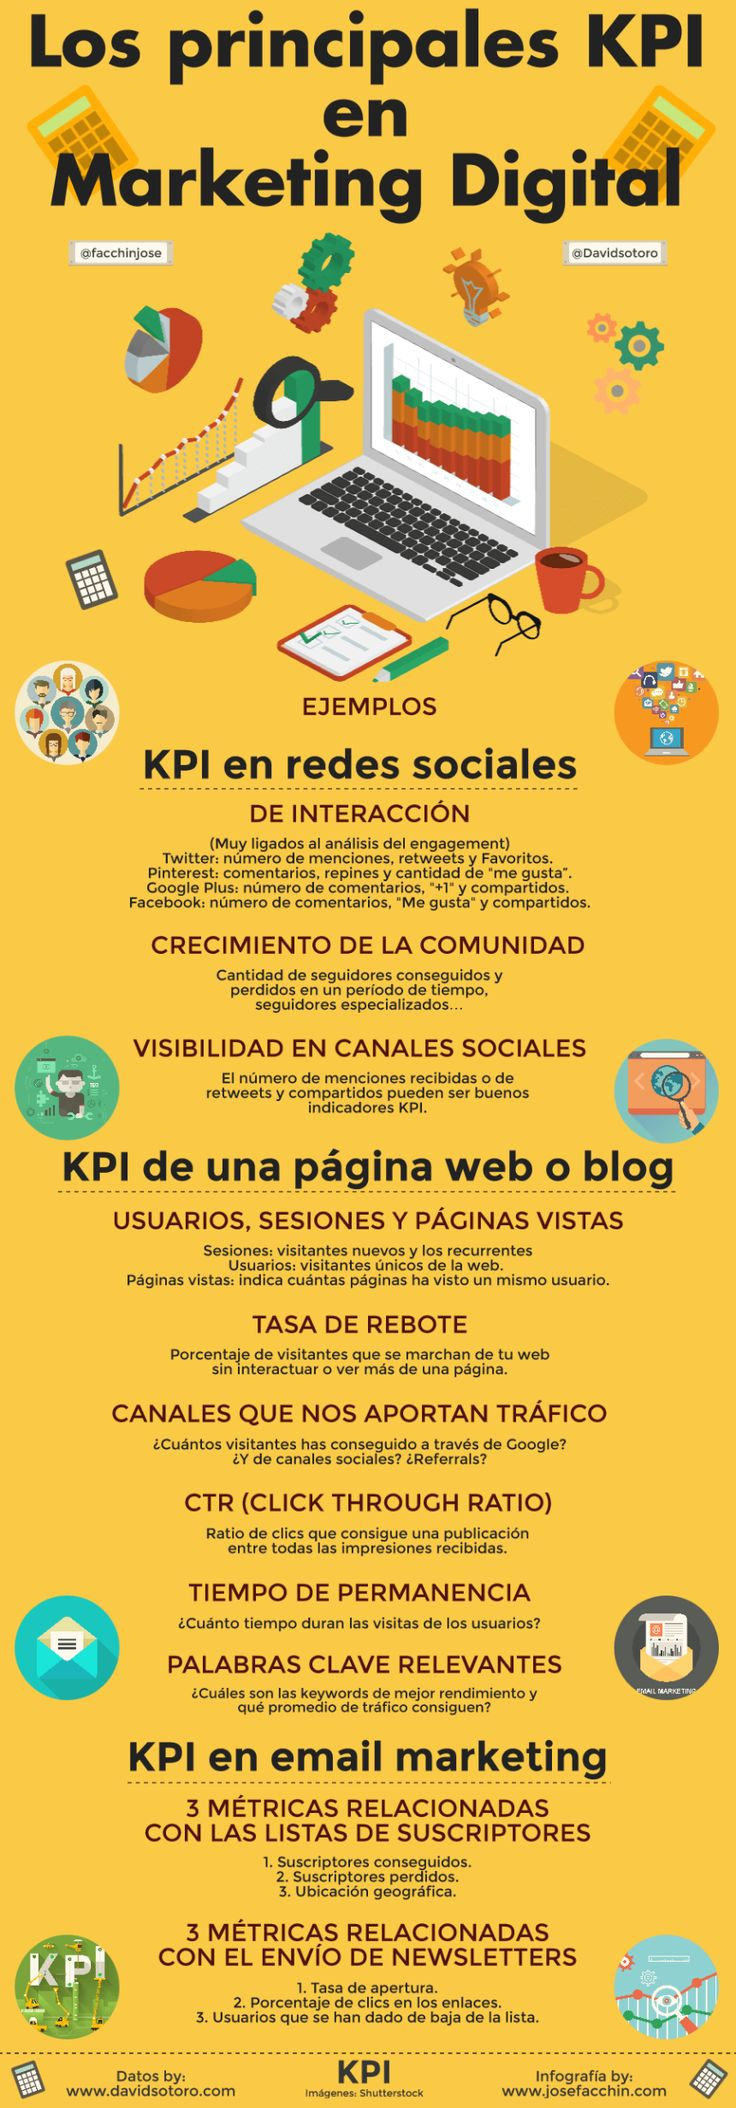 Los principales KPI del marketing digital. Infografia en español. #CommunityManager